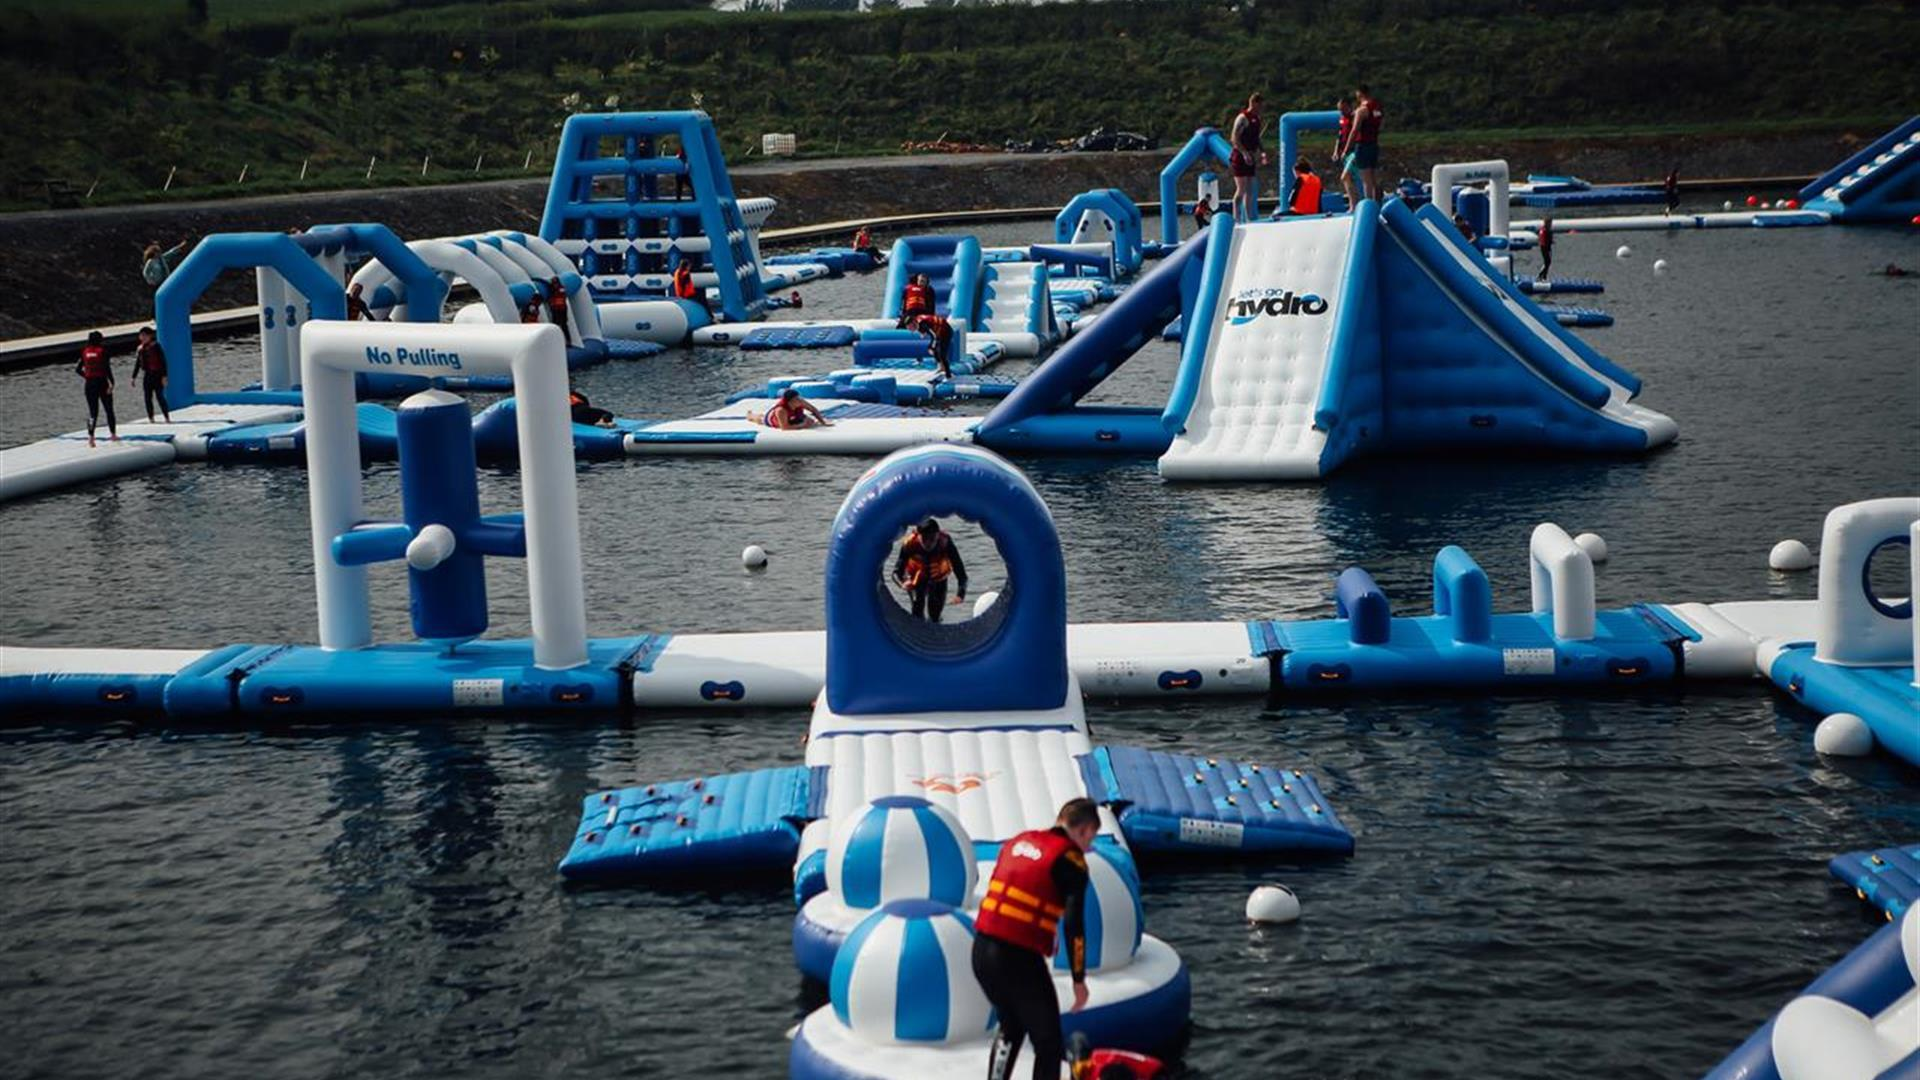 Image shows inflatables on the lake at Let's Go Hydro